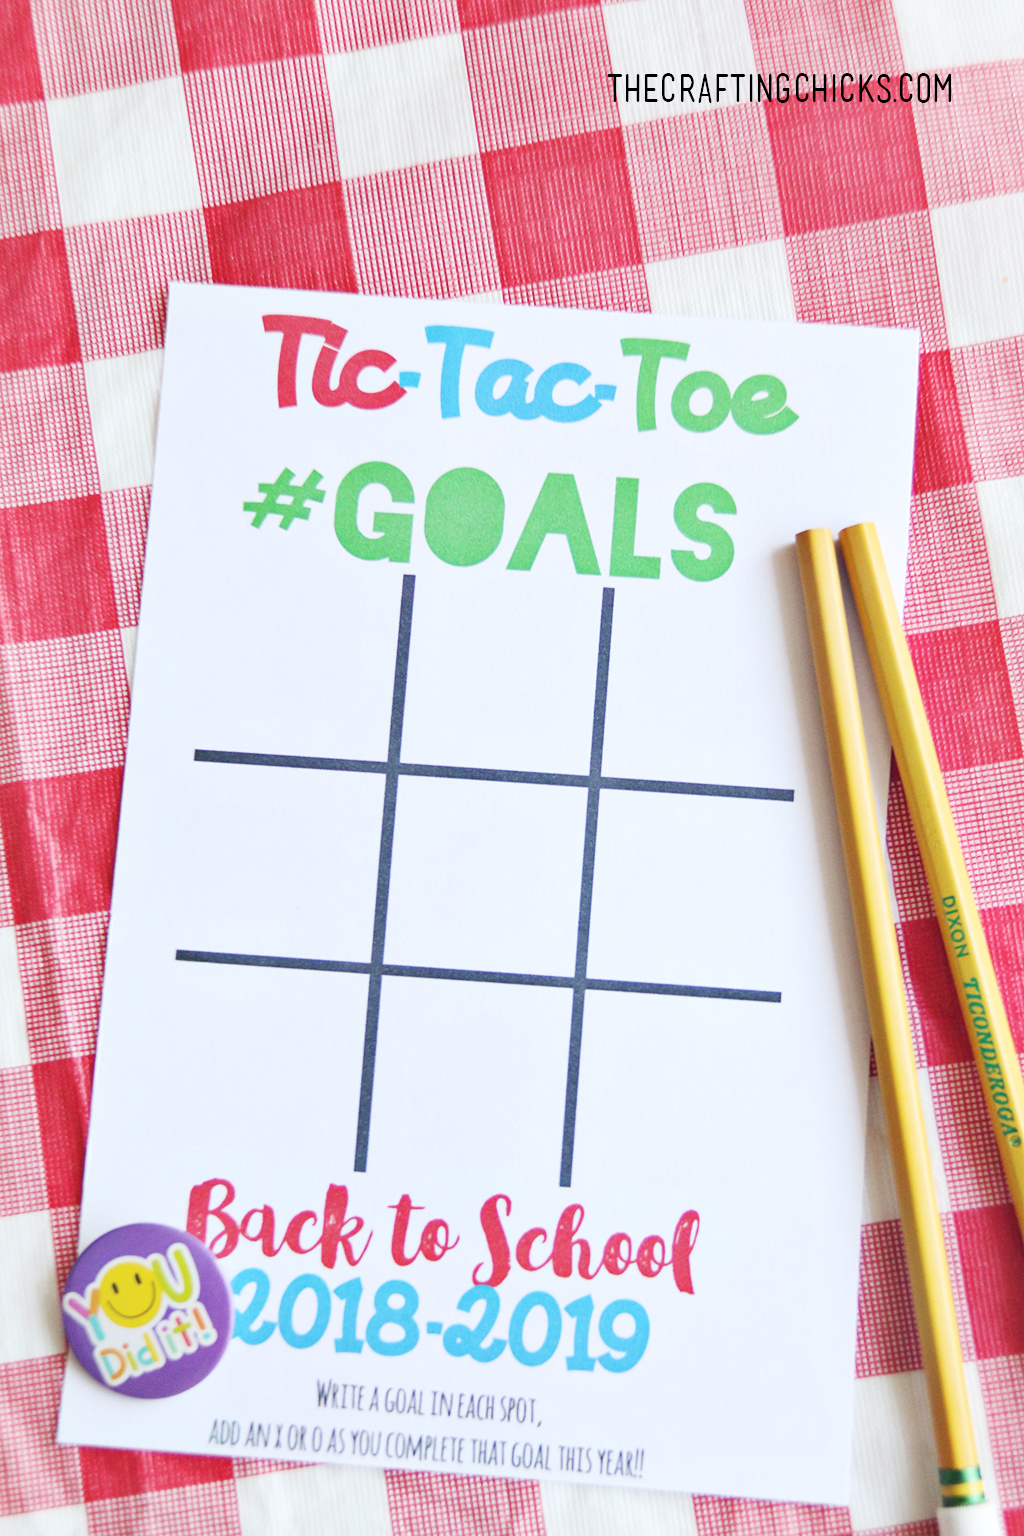 Back to School Goal Setting Tic-Tac-Toe printable with pencils on table